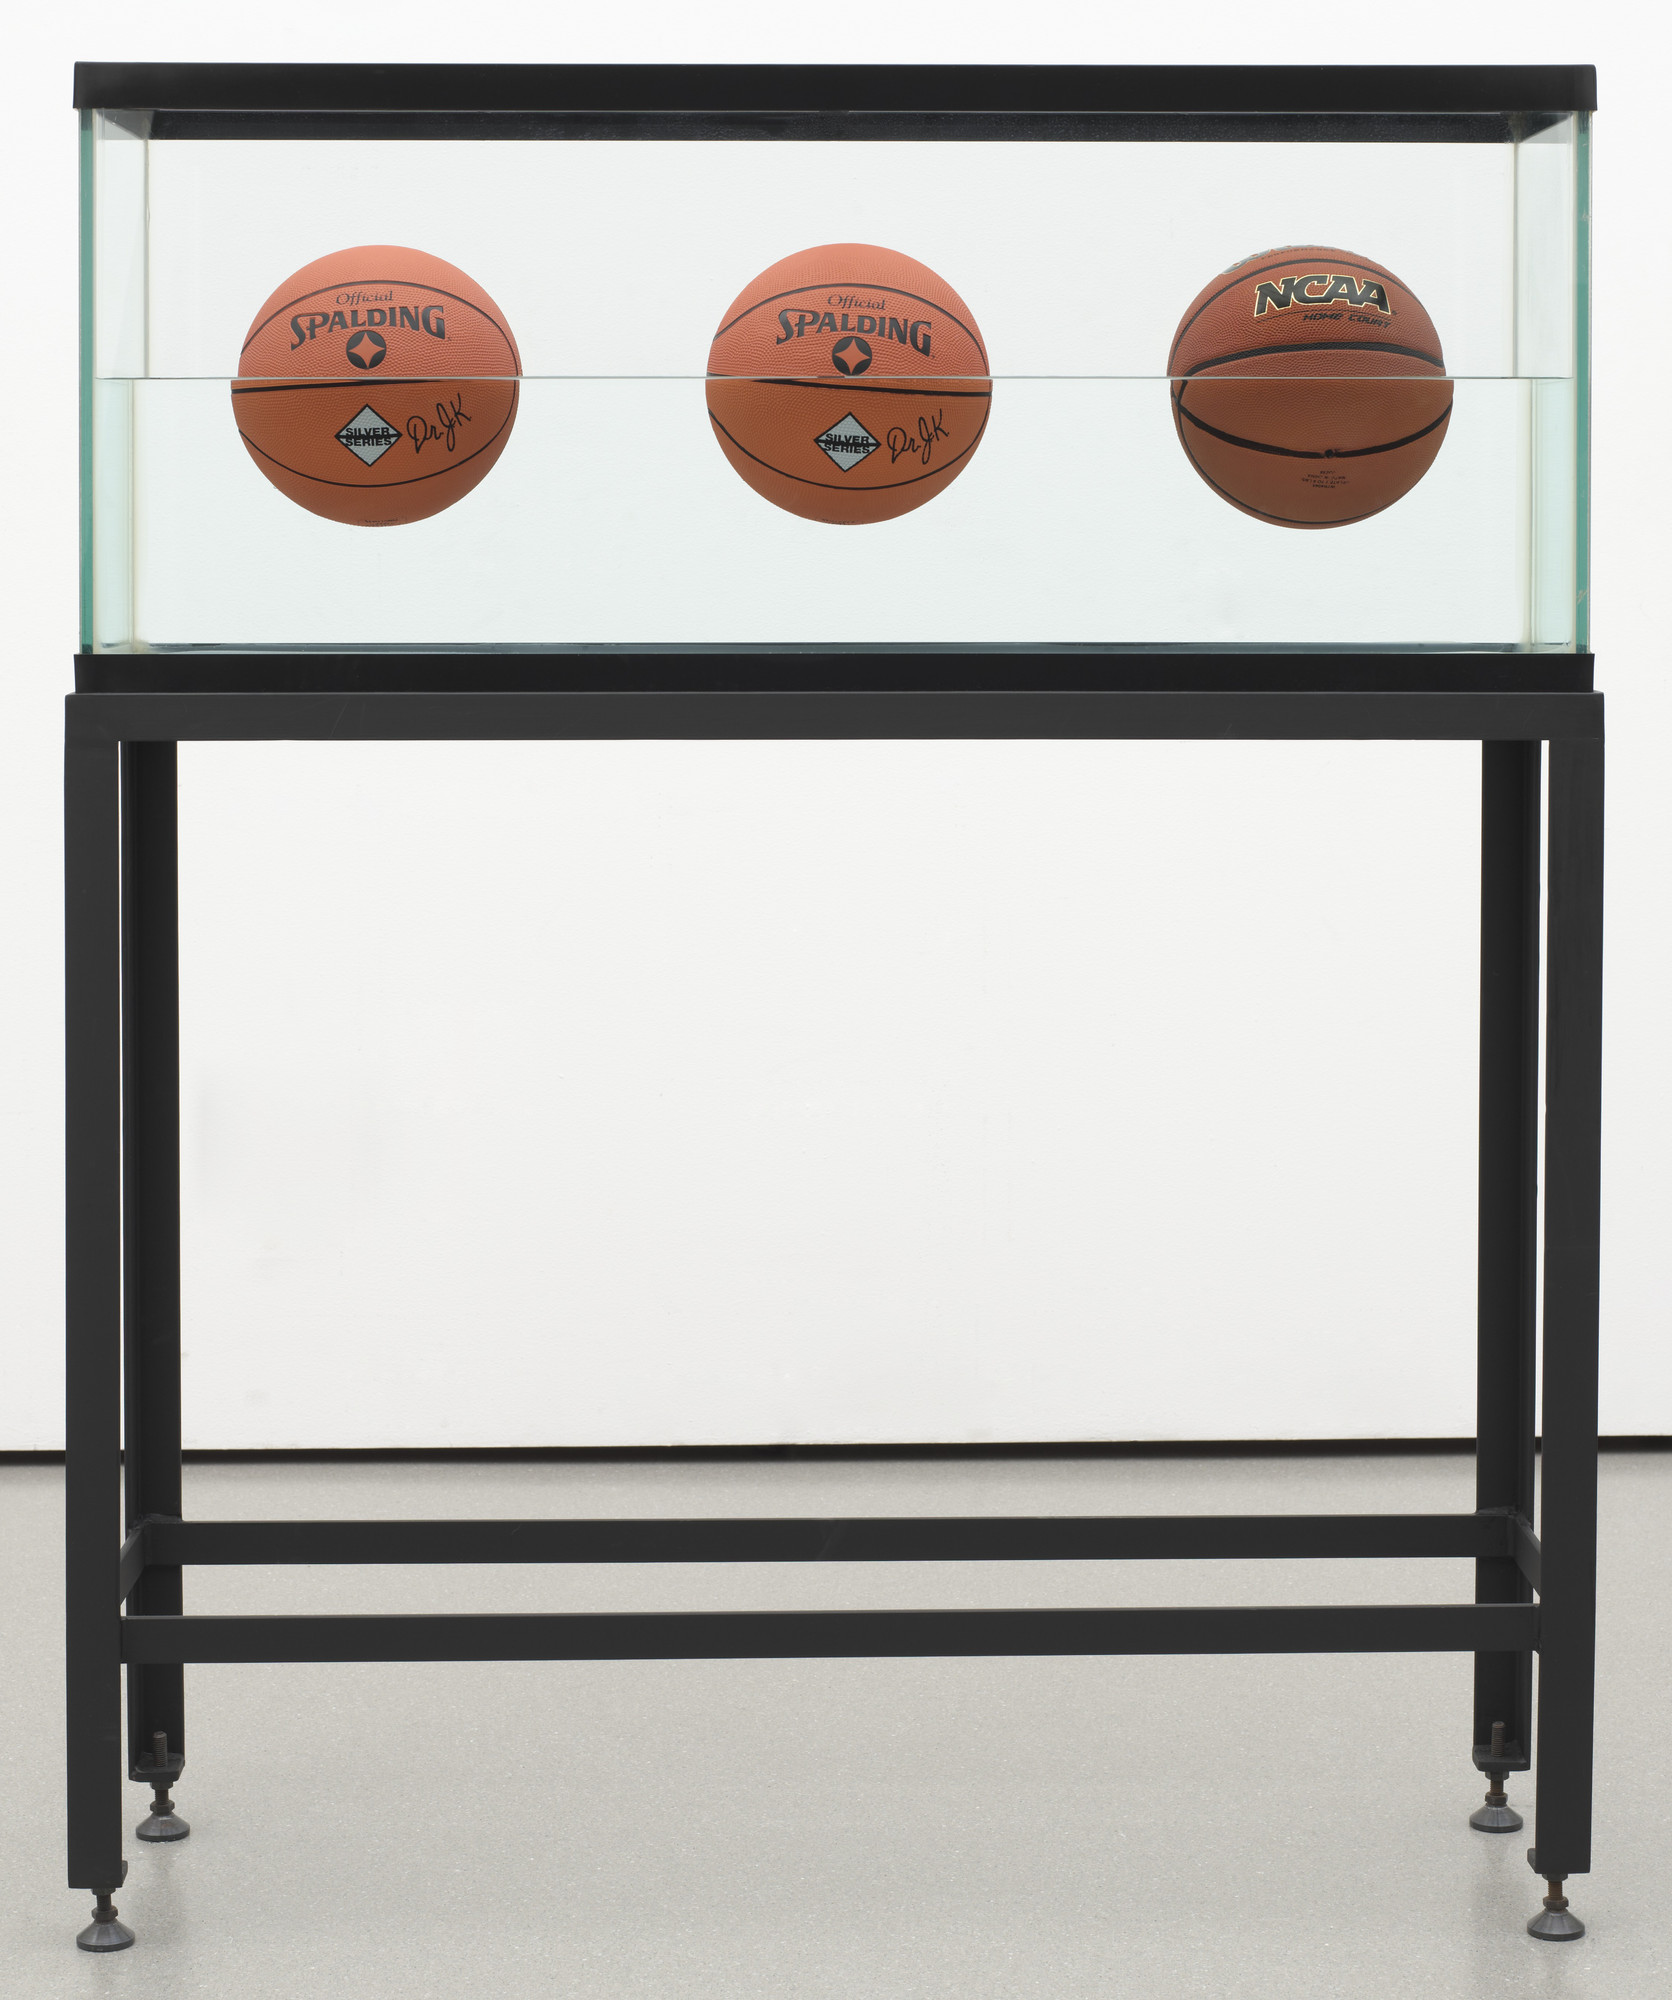 Jeff Koons. Three Ball 50⁄50 Tank (Two Dr. J. Silver Series, One Wilson Supershot). 1985